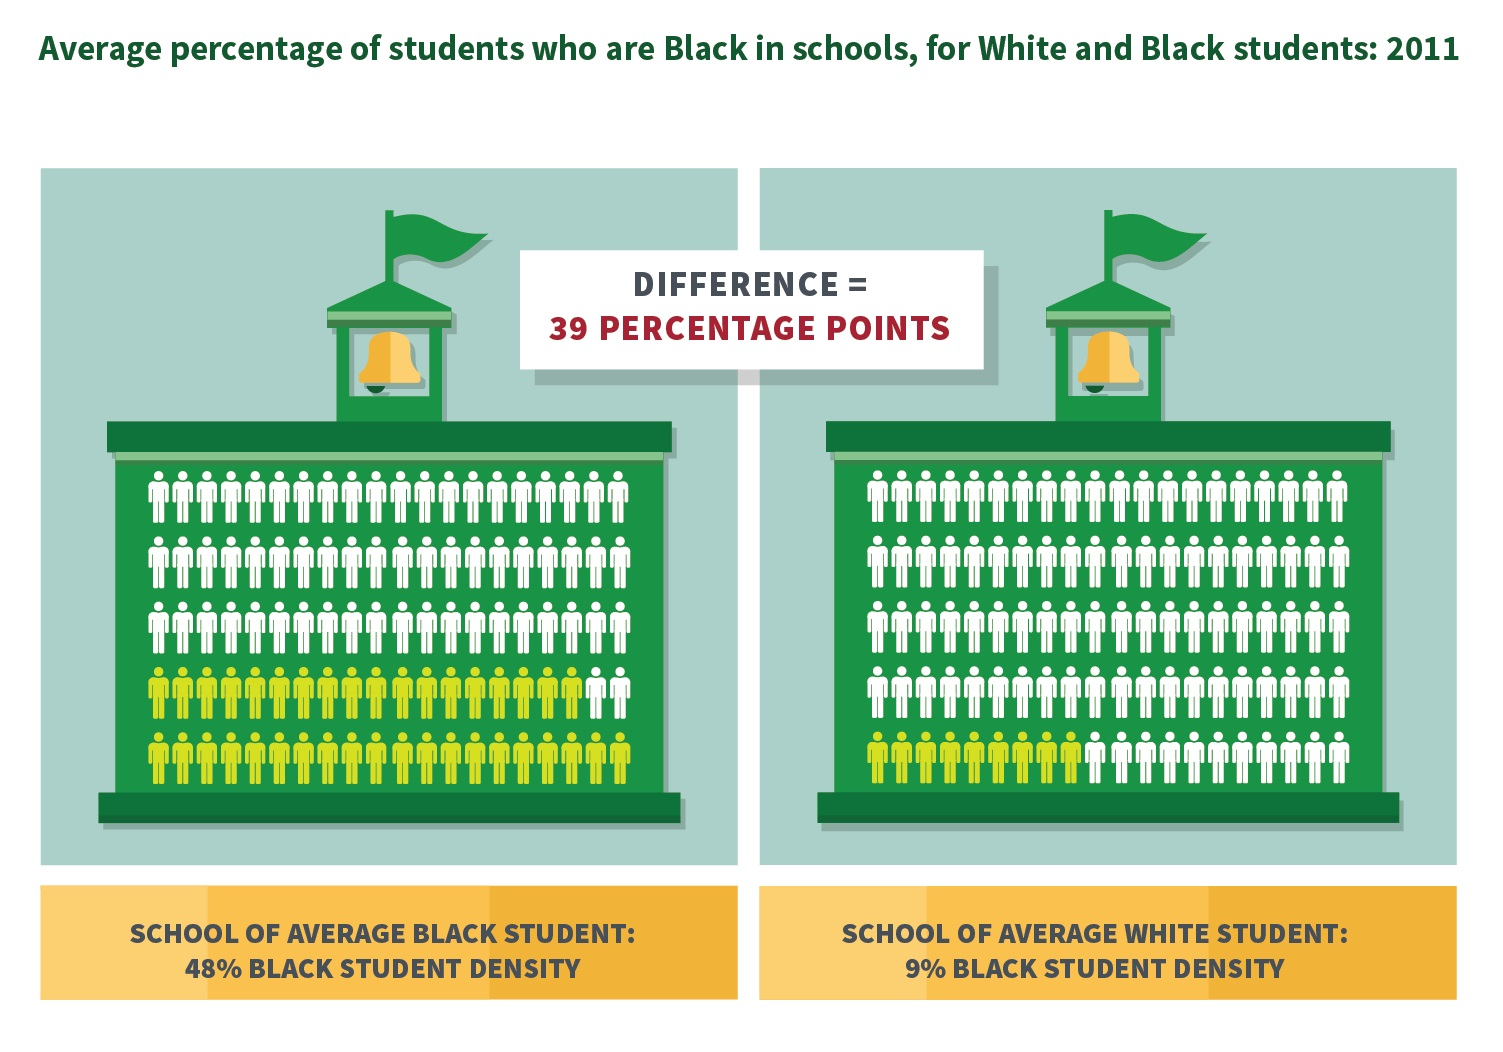 Average percentage of students who are Black in schools, for White and Black students: 2011 graphic.